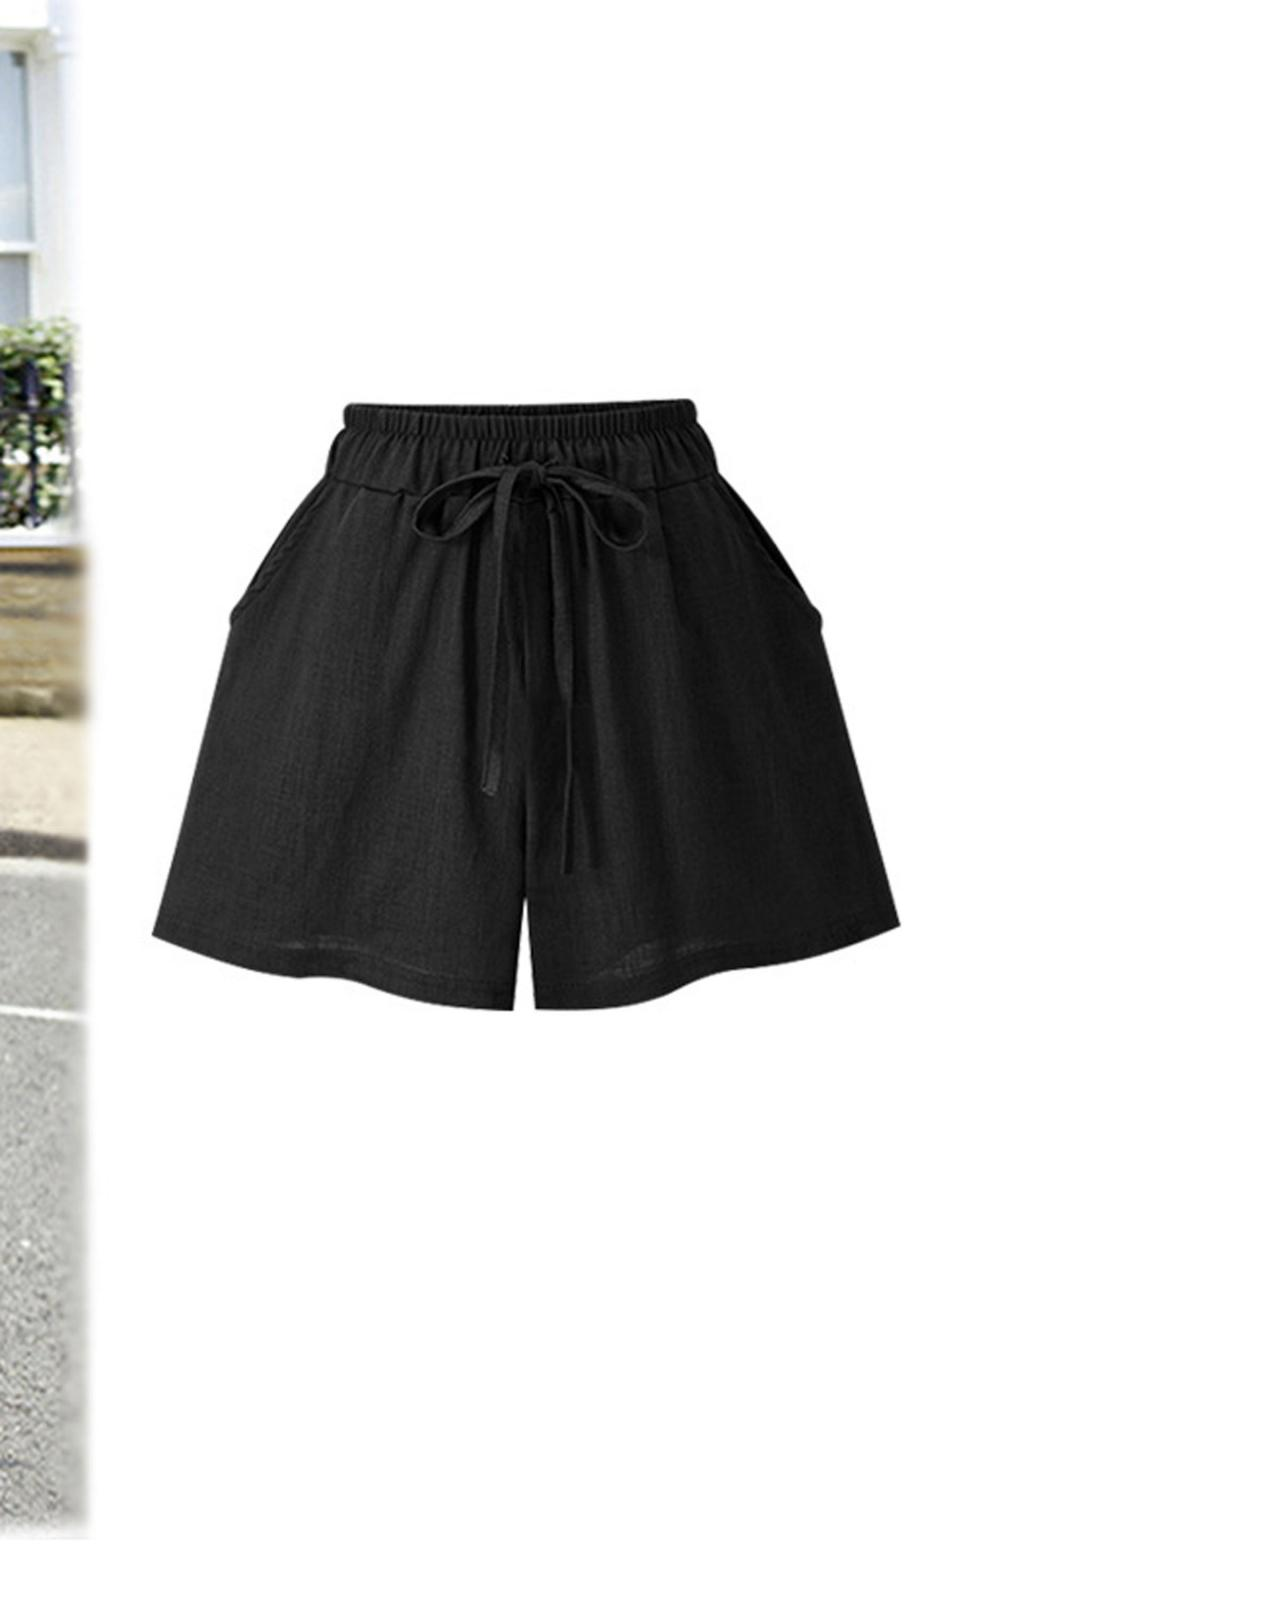 Black Elasticised Drawstring High Waisted Shorts